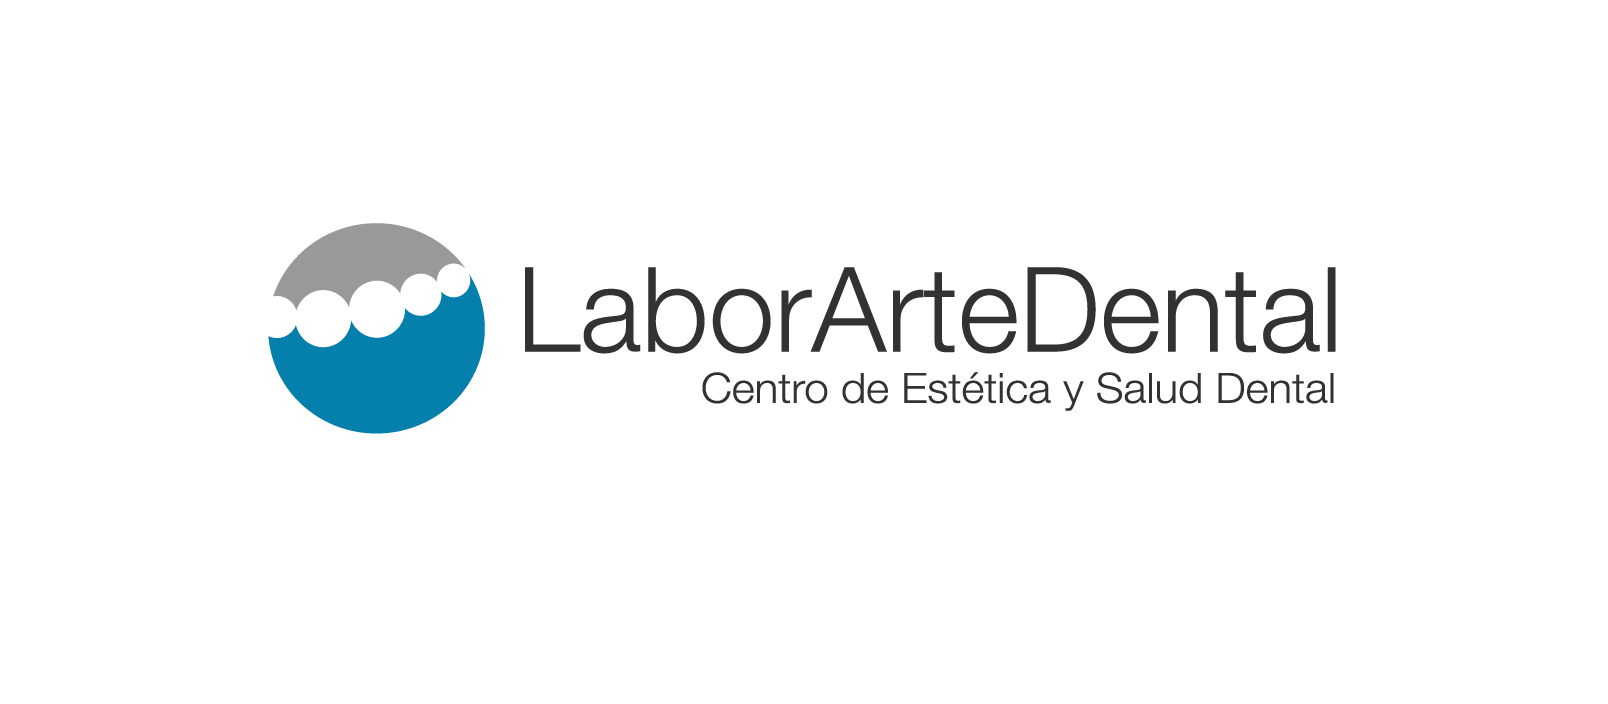 Laborarte Dental